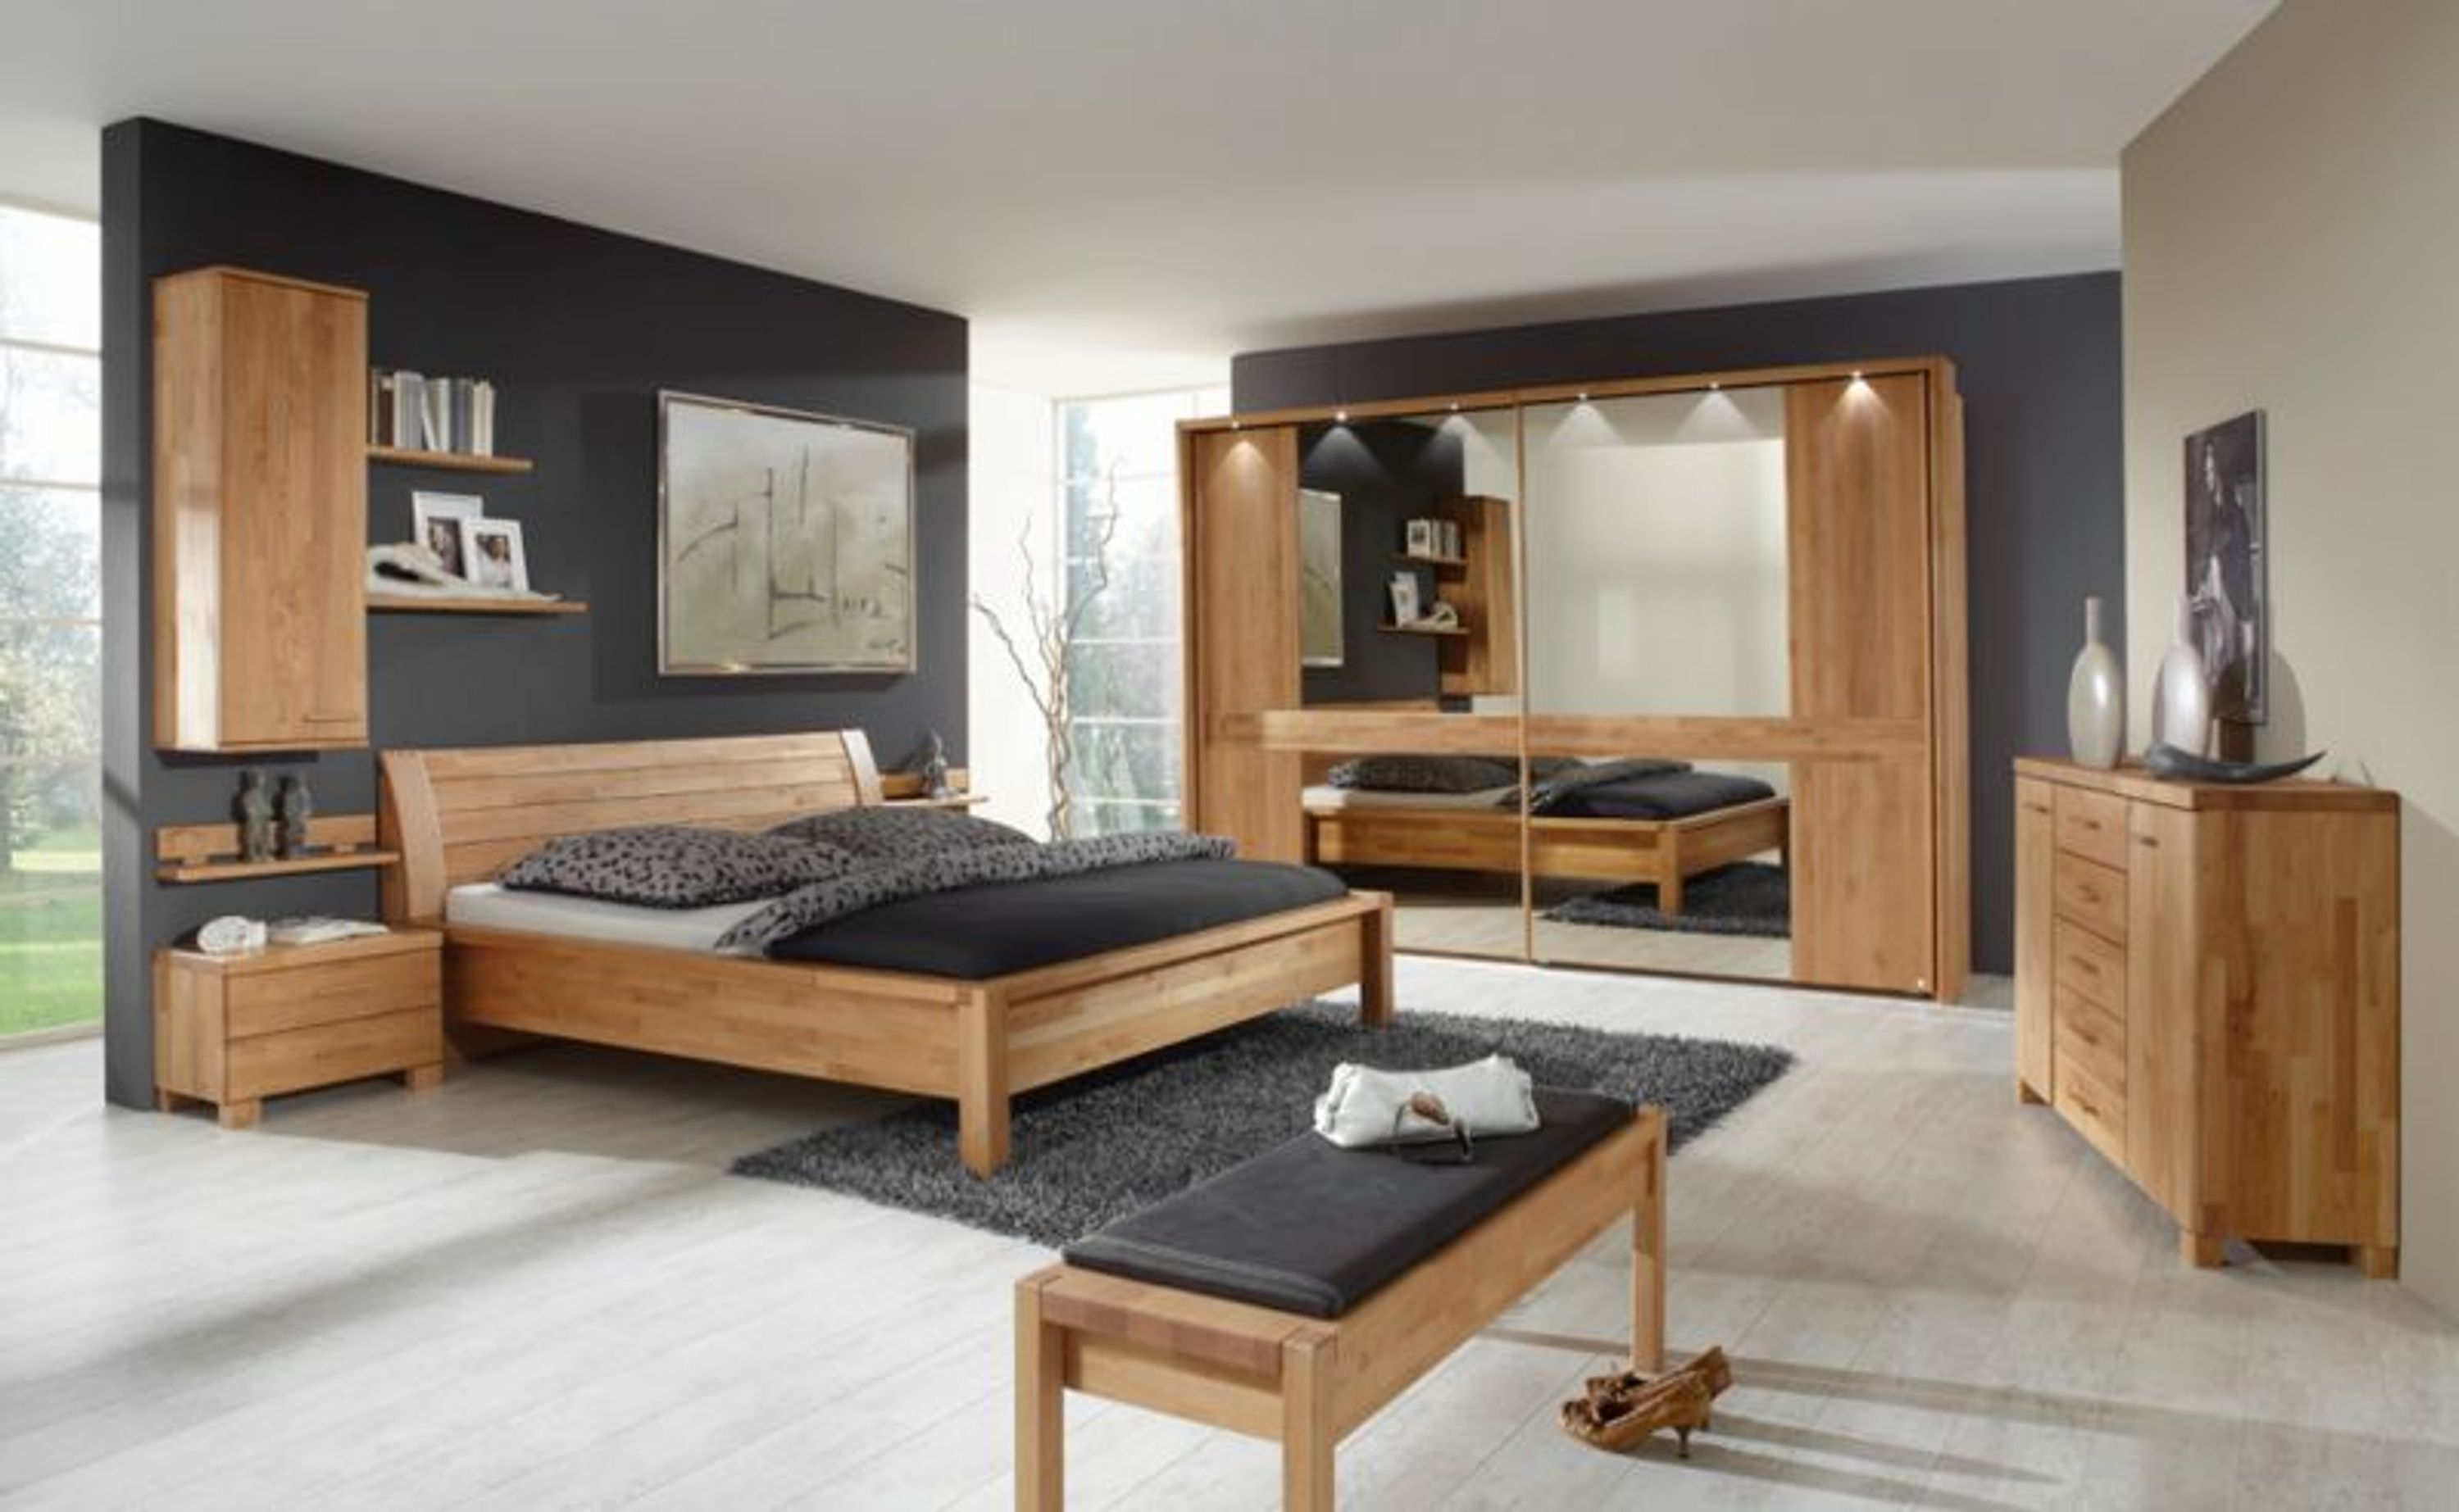 schlafzimmer gent erle massiv 200x200 kaufen bei. Black Bedroom Furniture Sets. Home Design Ideas